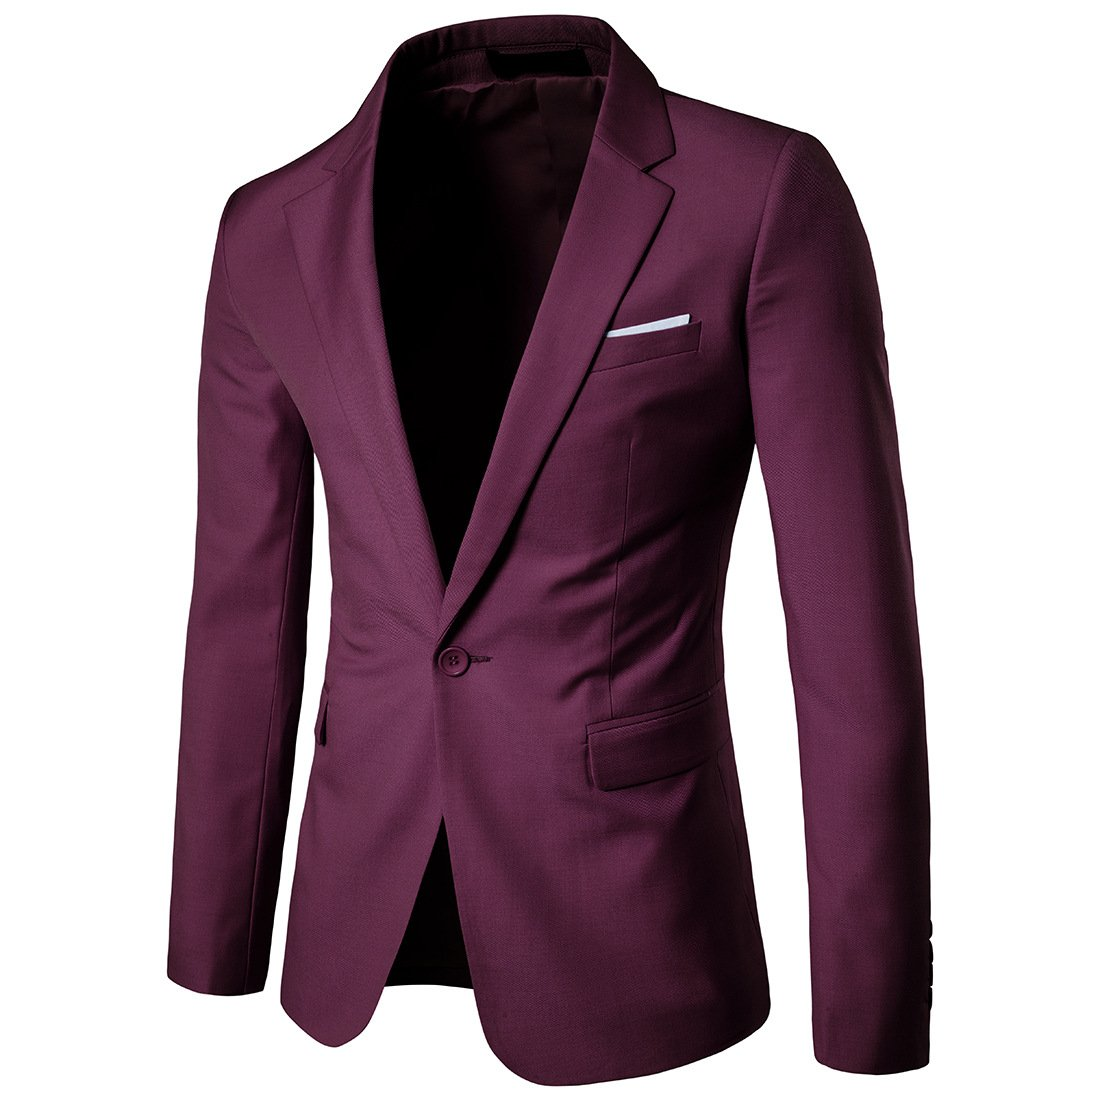 WULFUL Men's Slim Fit Suit One Button Suit Coat Casual Business Lapel Blazers Jacket,X-Large,Dark Red